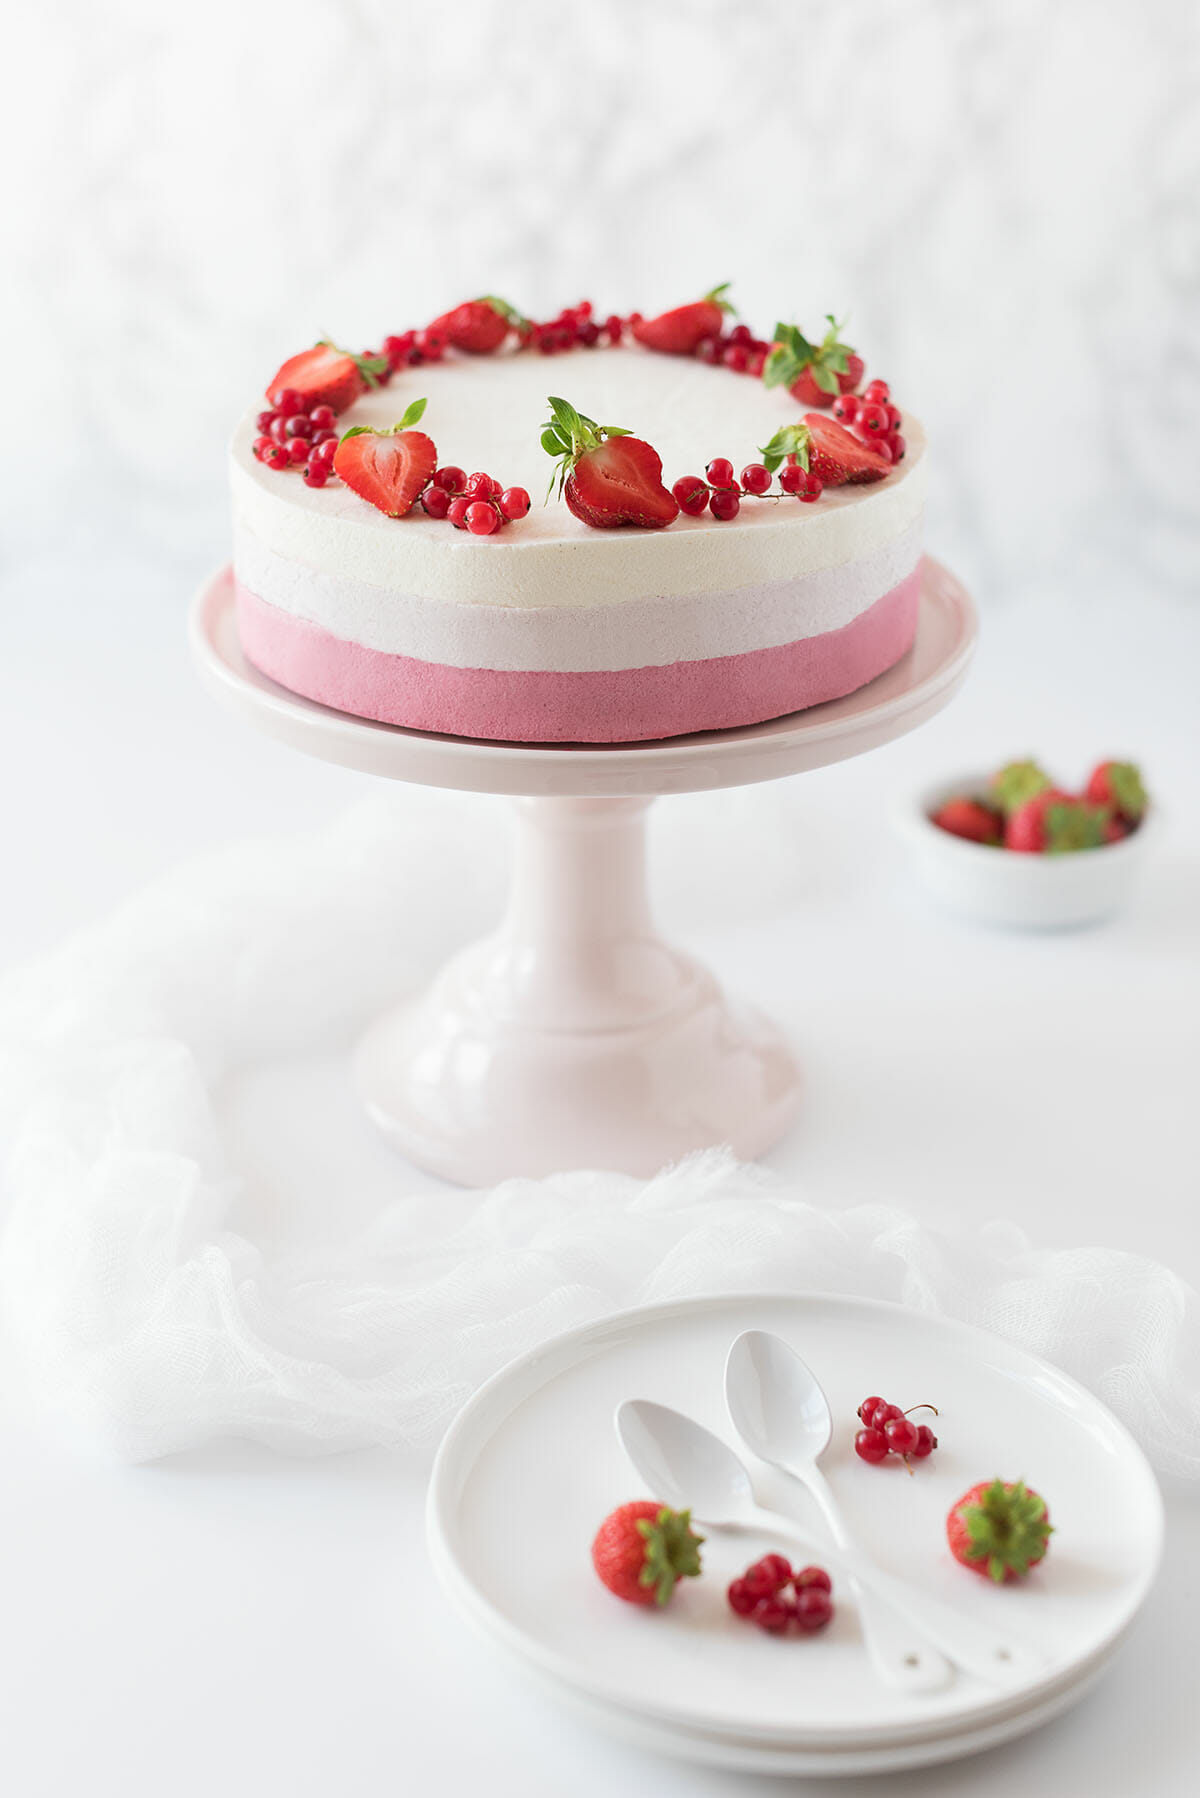 Entremets ombré fruits rouges, vanille, amande | Lilie Bakery